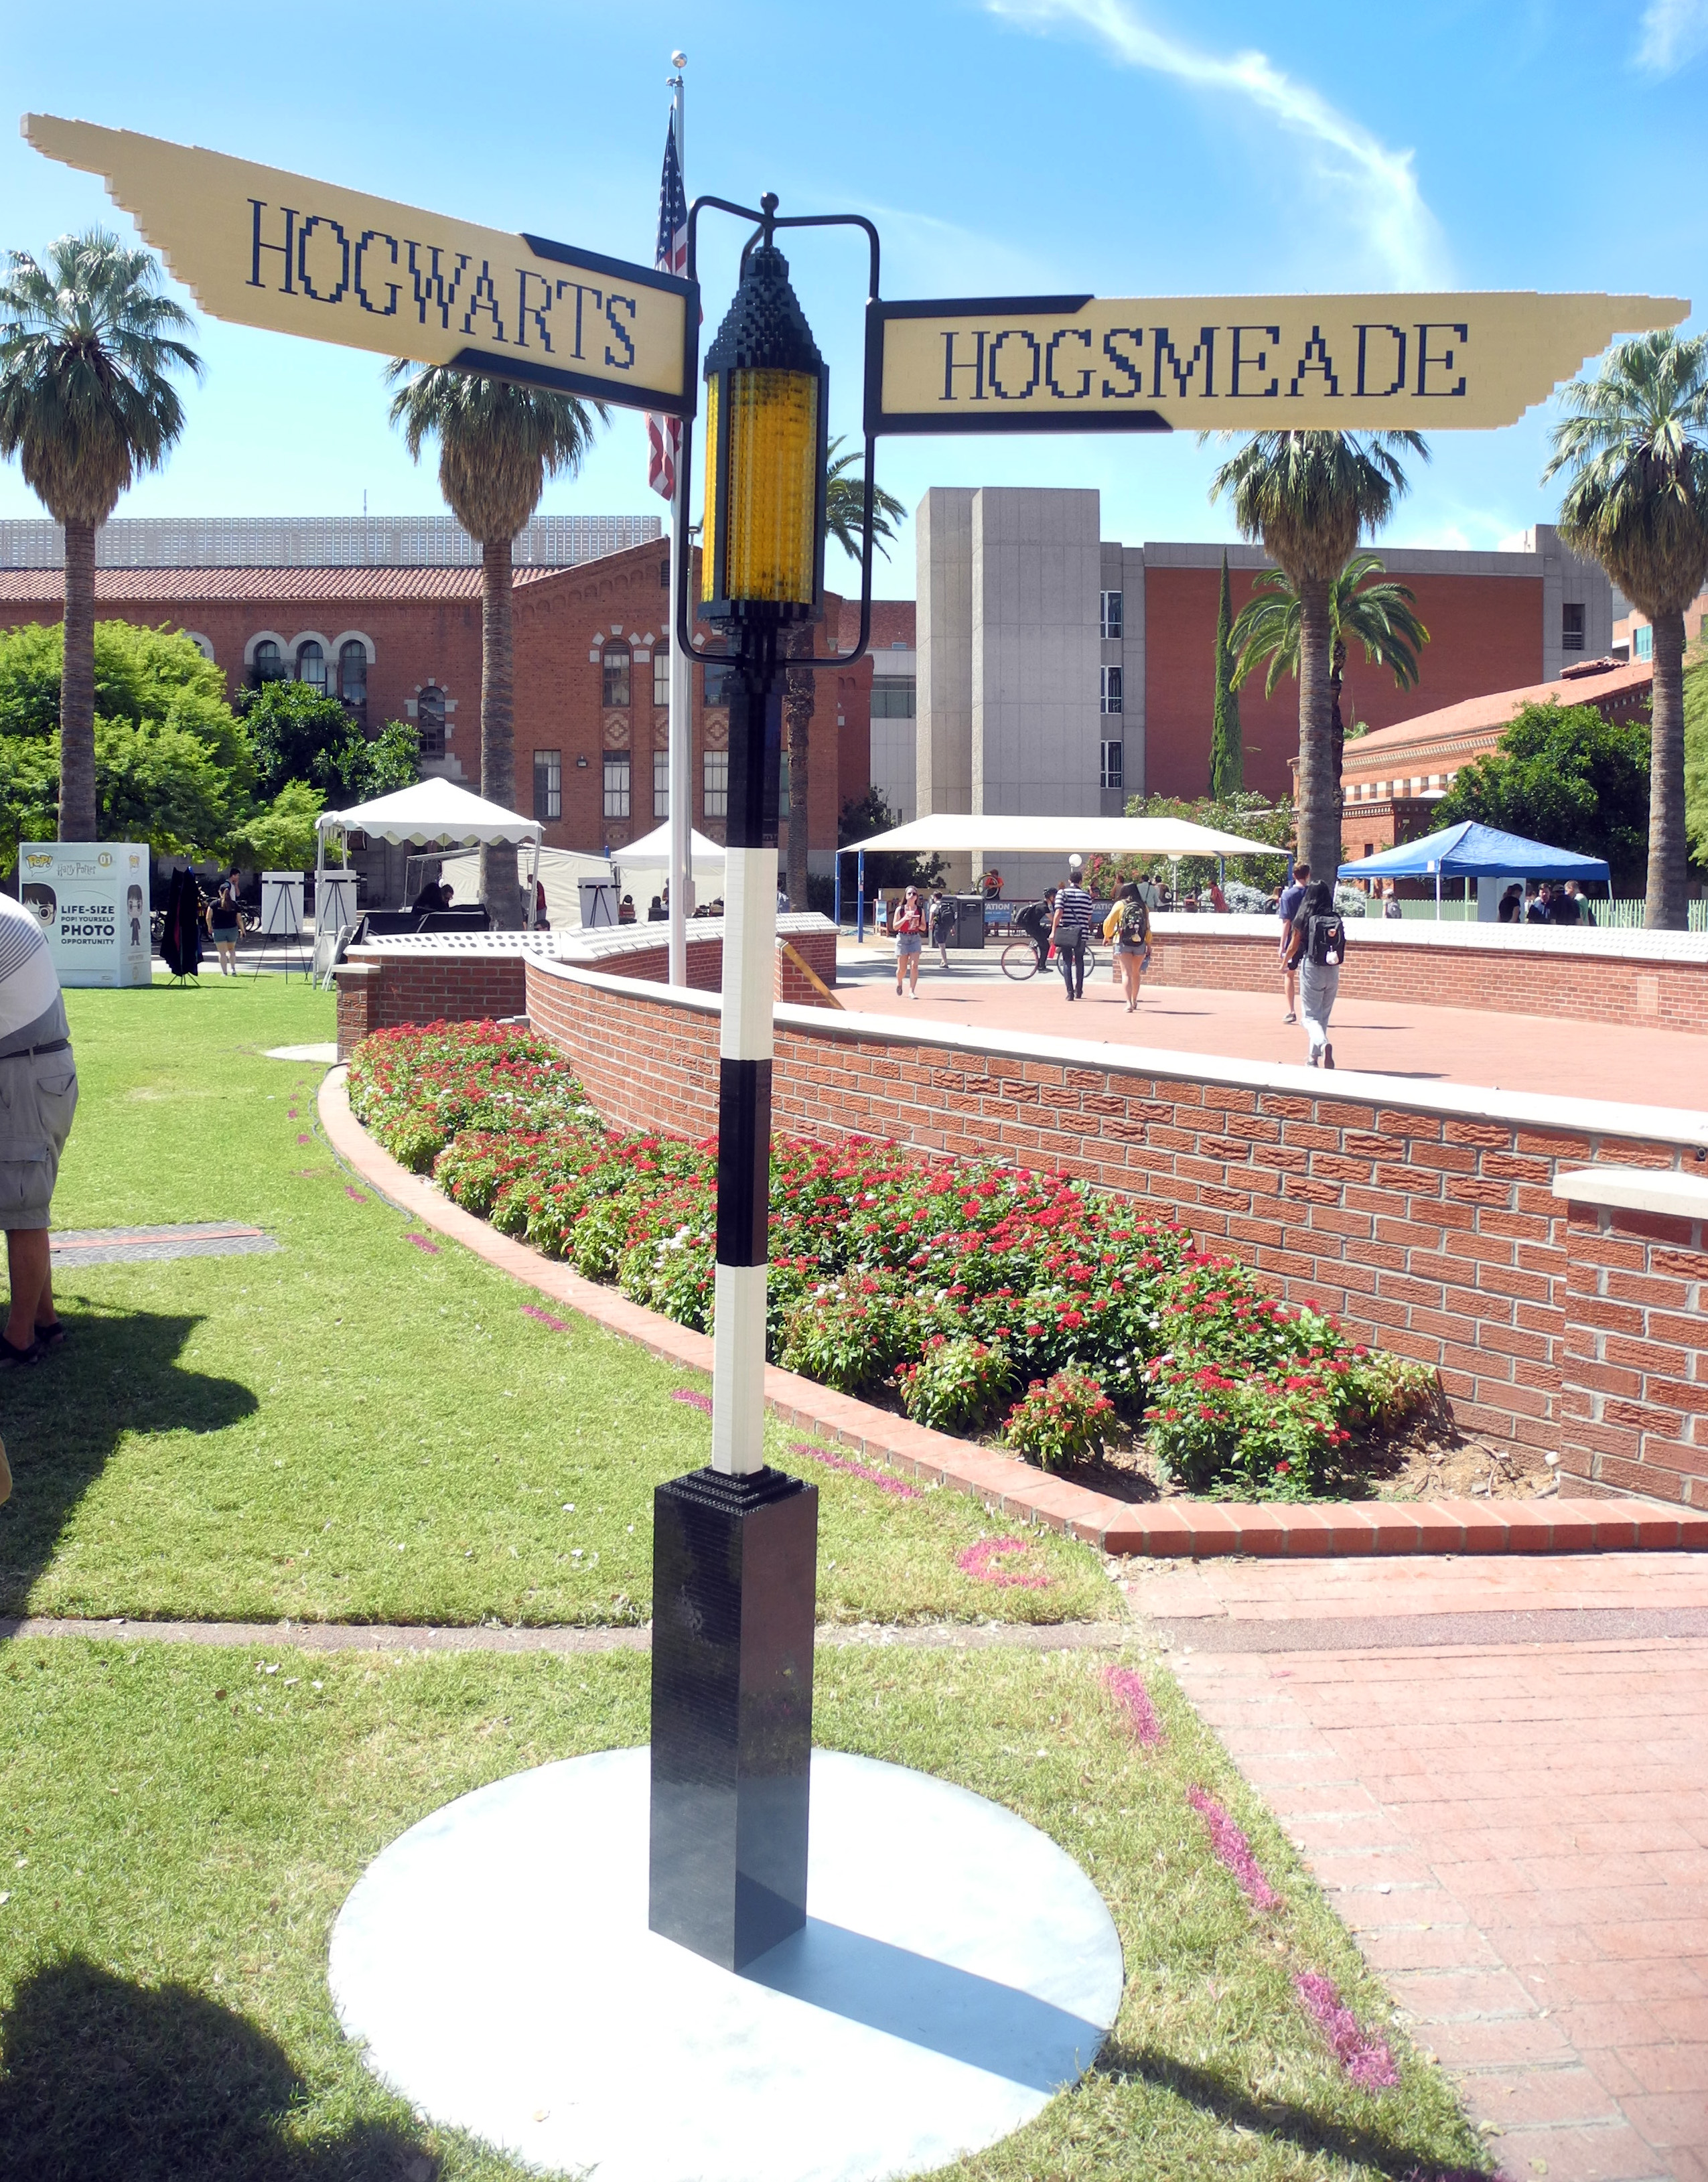 A signpost constructed entirely from LEGO bricks directed University of Arizona students to Hogwarts and Hogsmeade.